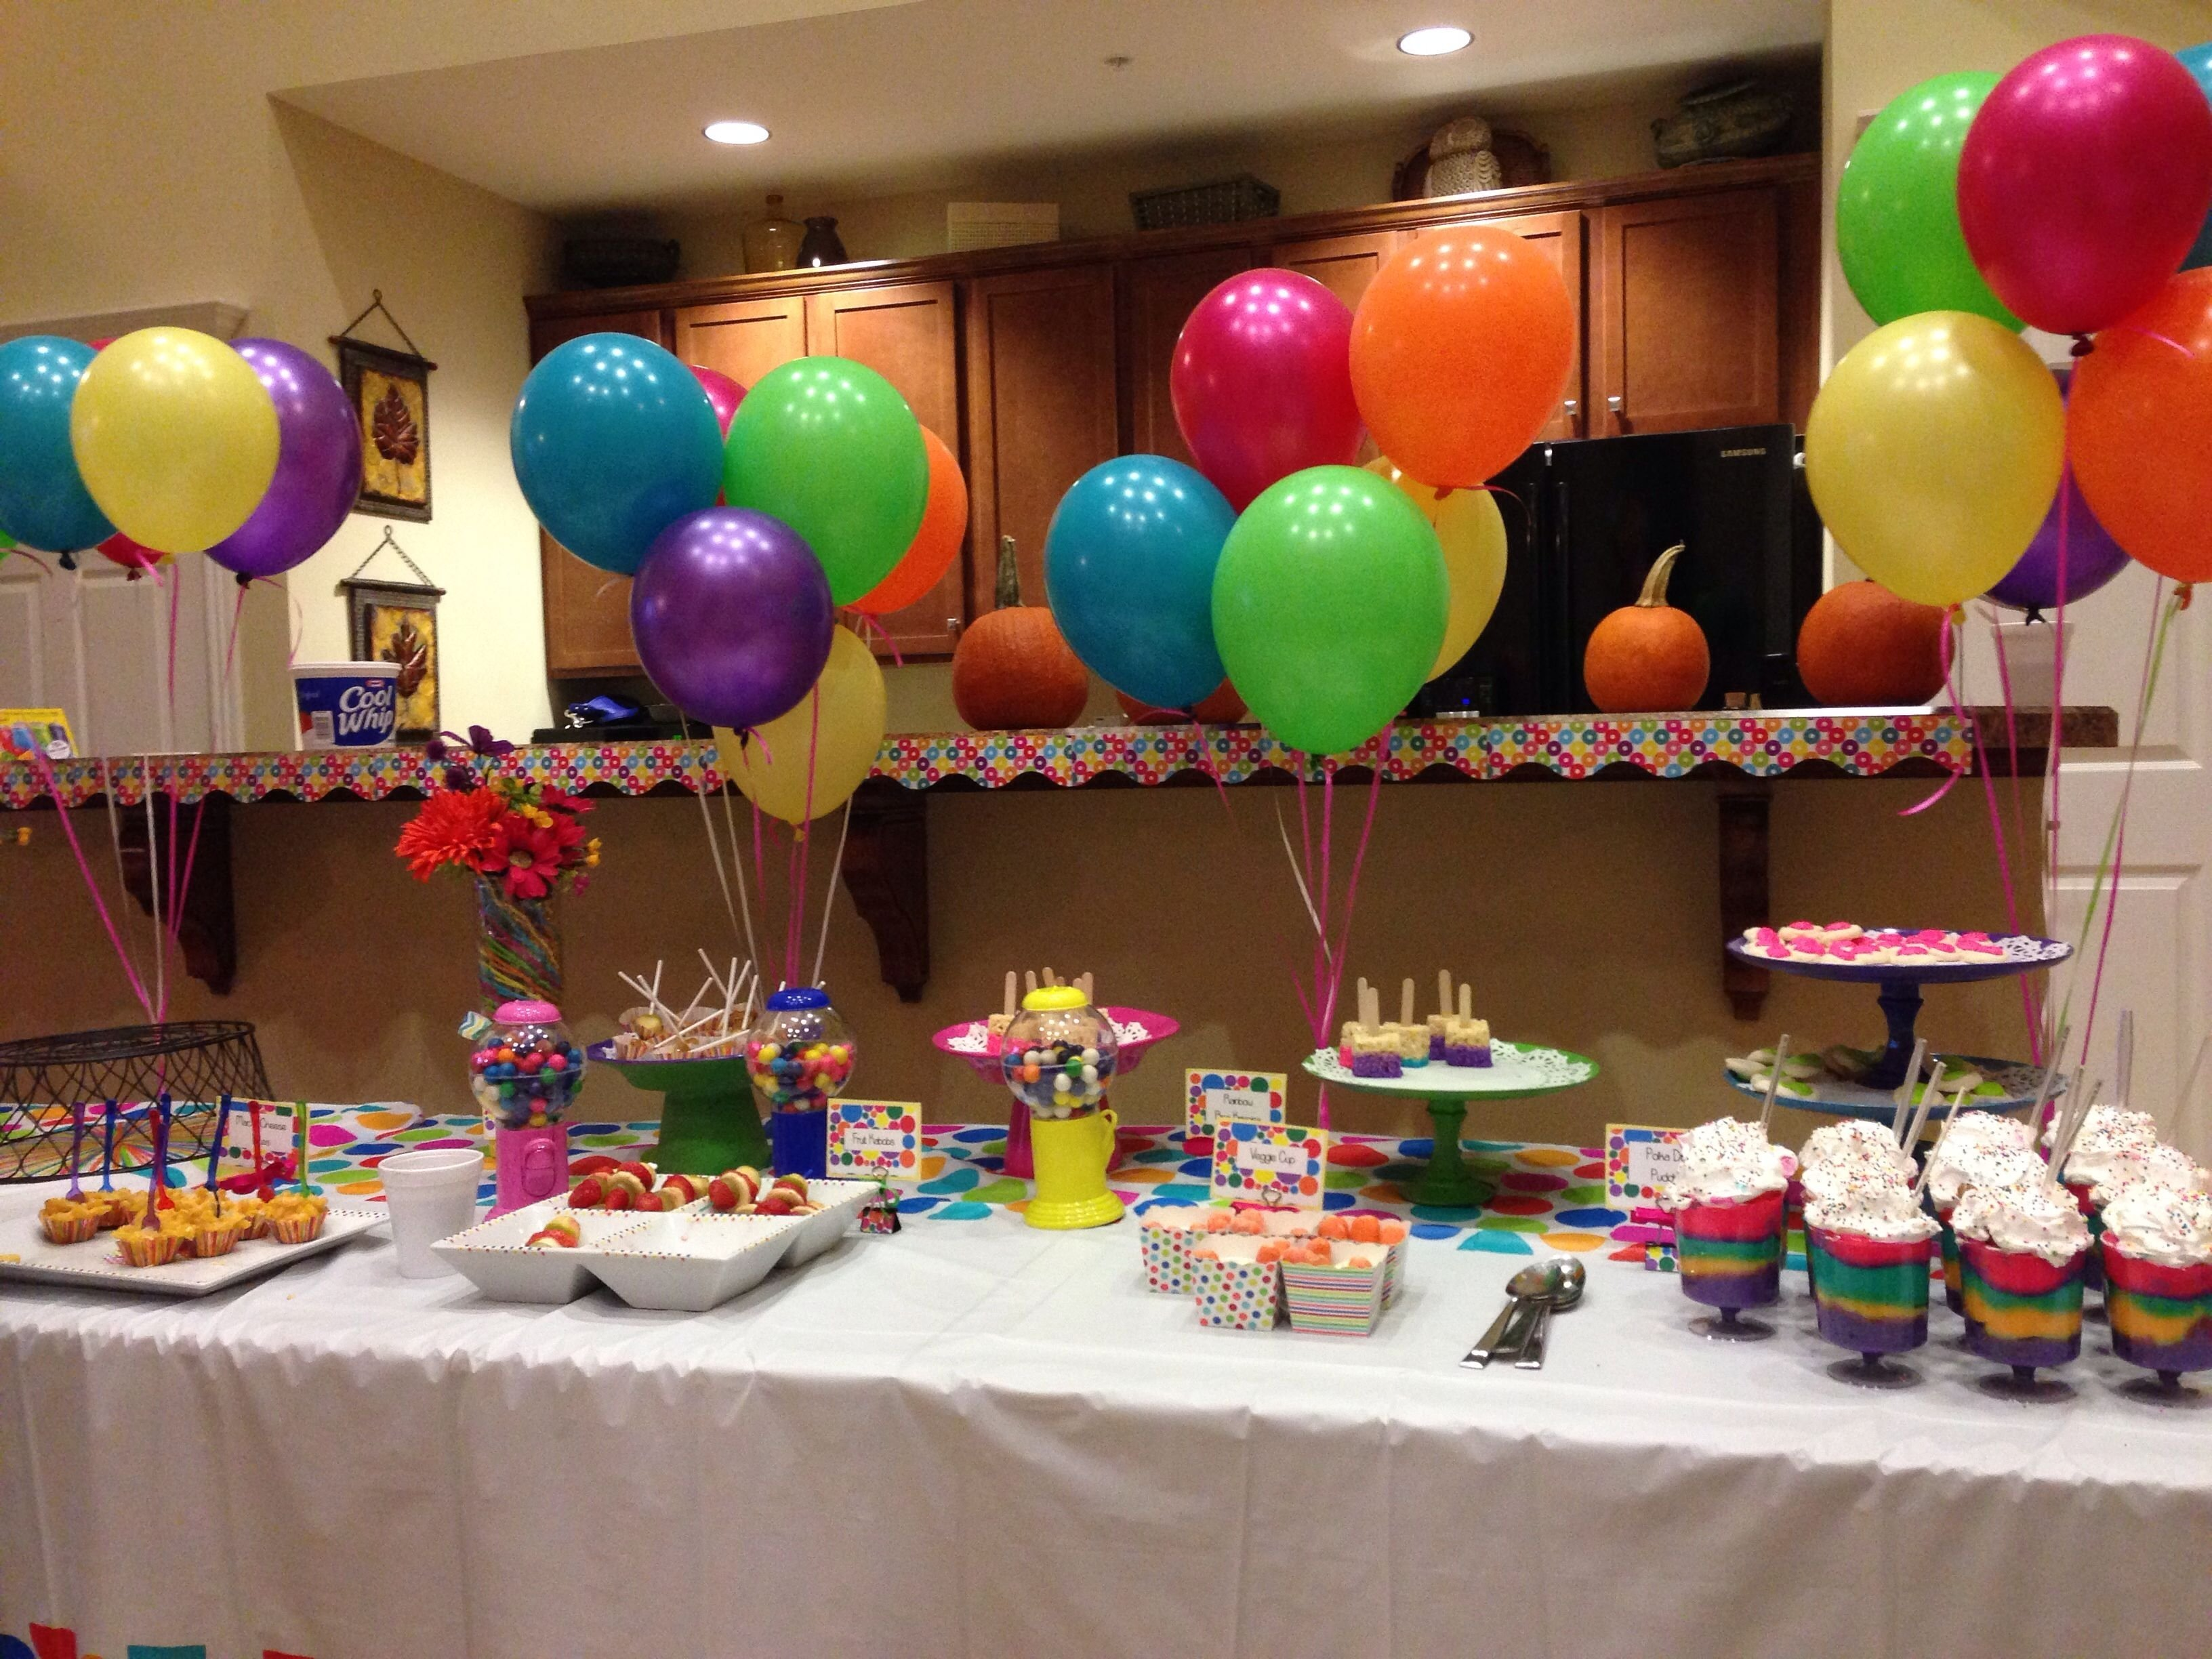 10 Lovable Party Ideas For A 2 Year Old 4 year old birthday party ideas party ideas for kids pinterest 7